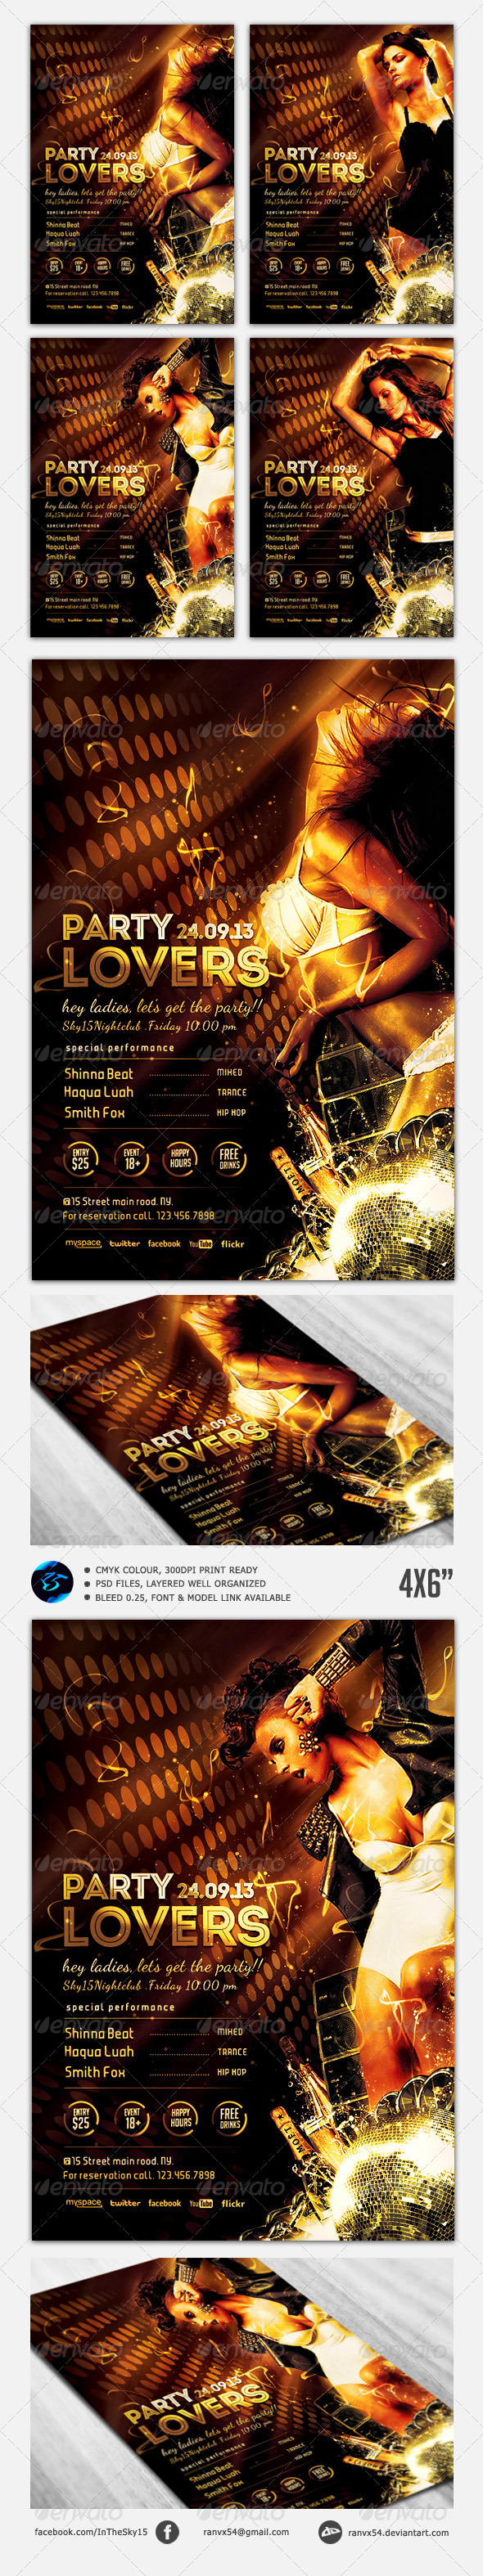 Party Lovers Flyer Template - Clubs & Parties Events